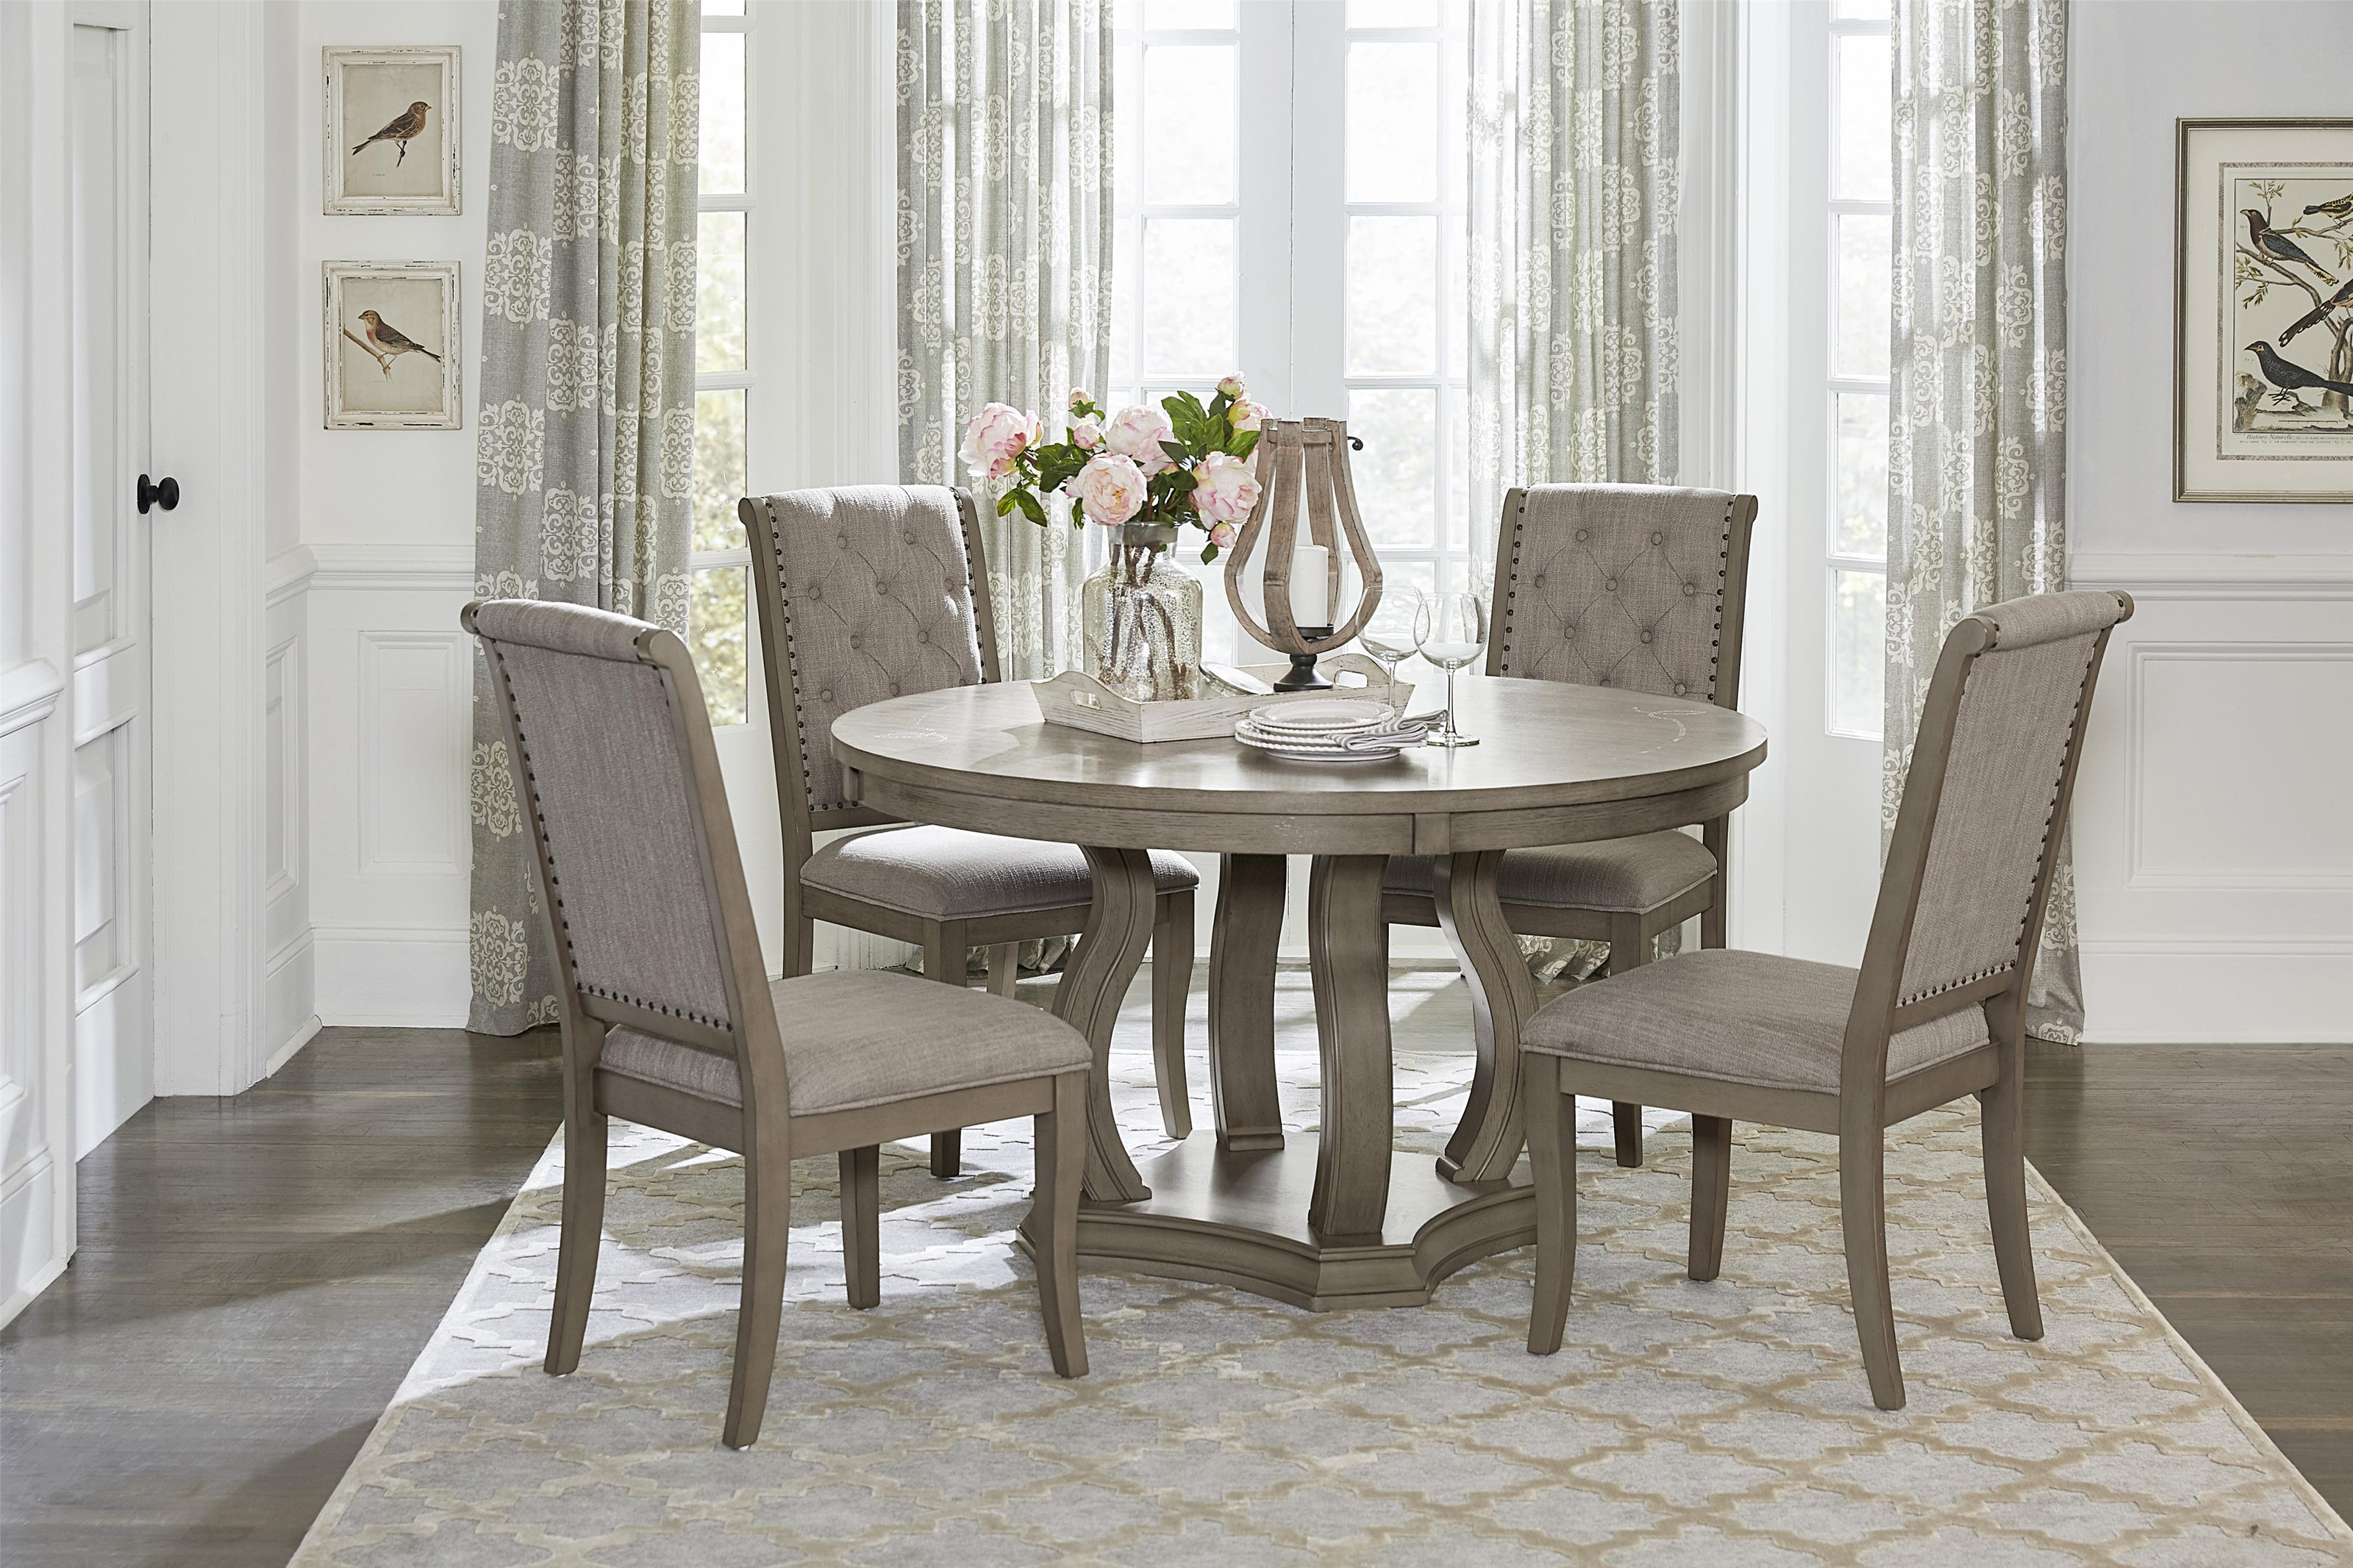 Vermillion 5-Piece Round Dining Table Set by Homelegance at Beck's Furniture